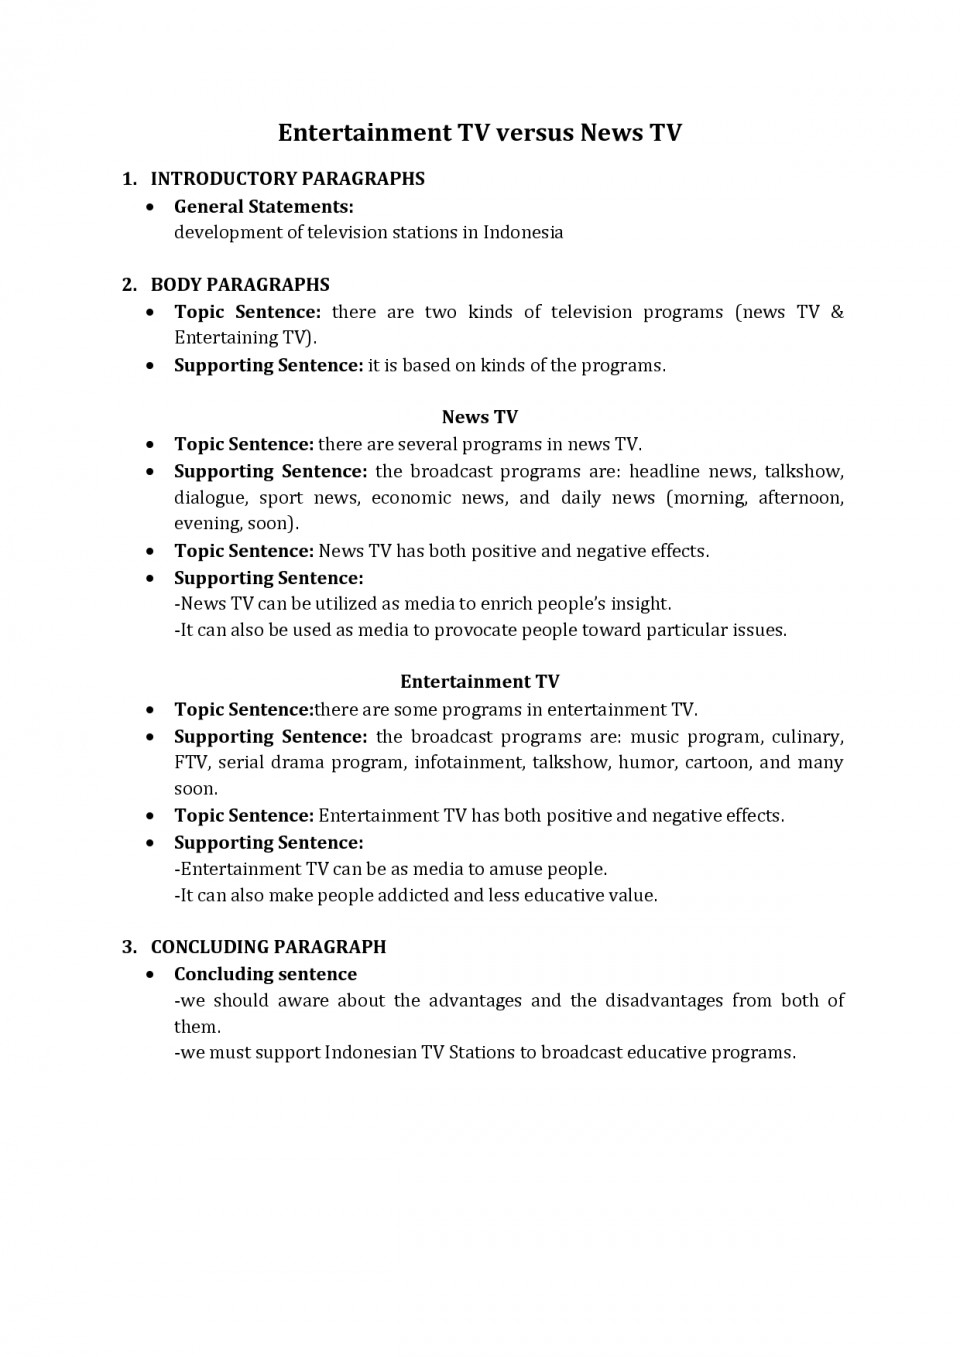 011 writing college essay outline term paper writer service l